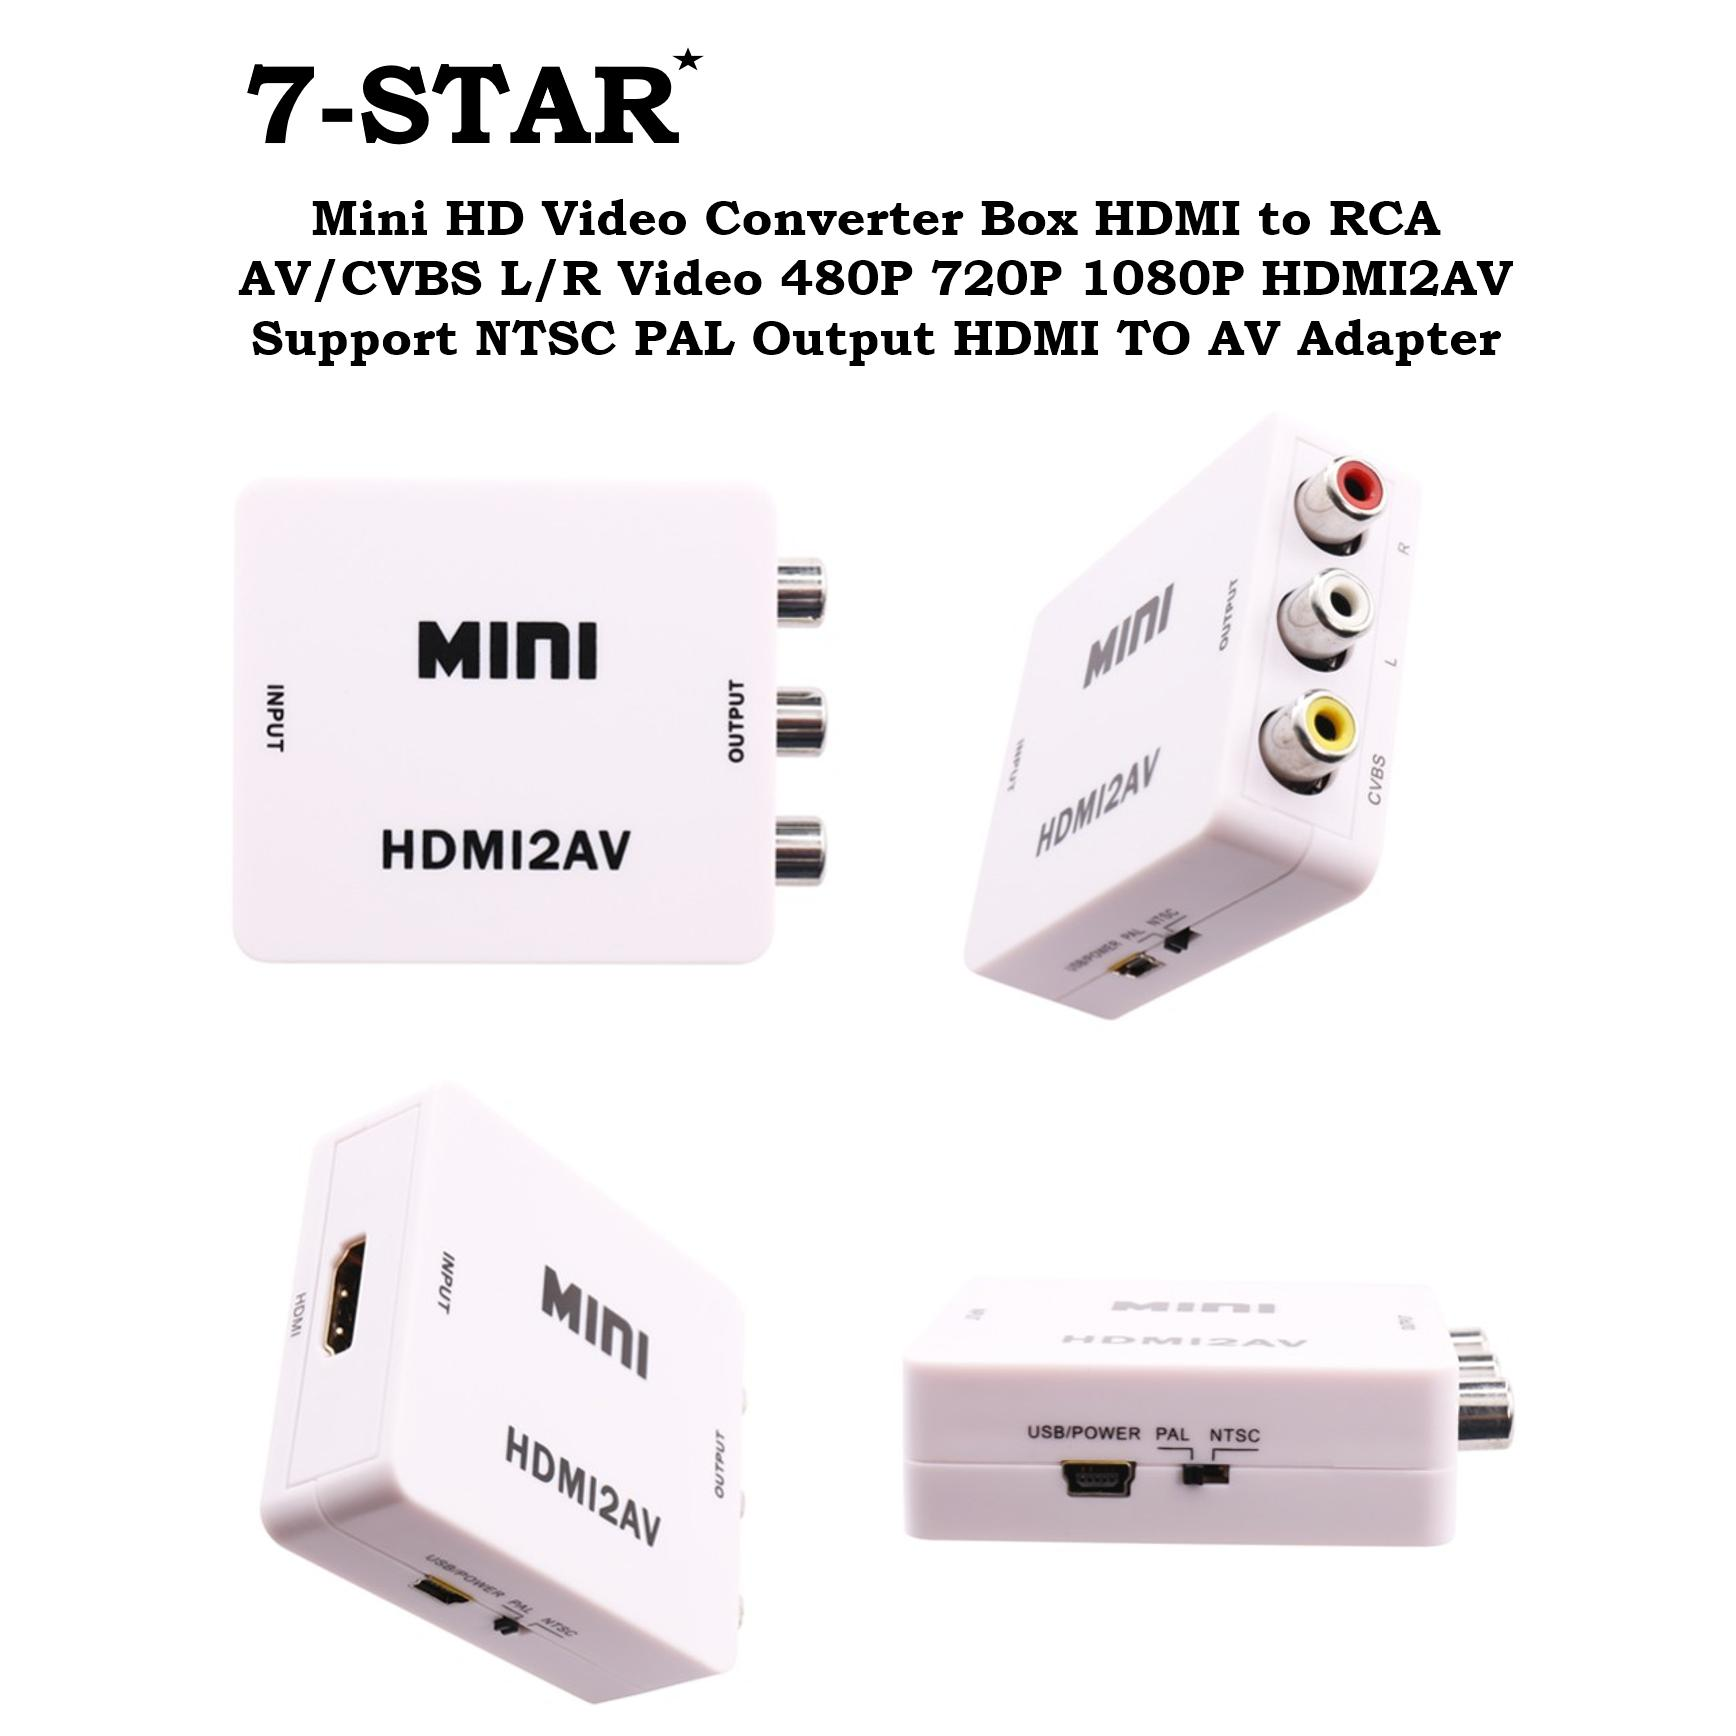 Buy Sell Cheapest 360dsc Rca Av Best Quality Product Deals Converter Hdmi To Support Full Hd 1080p Mini Video Box Cvbs L R 480p